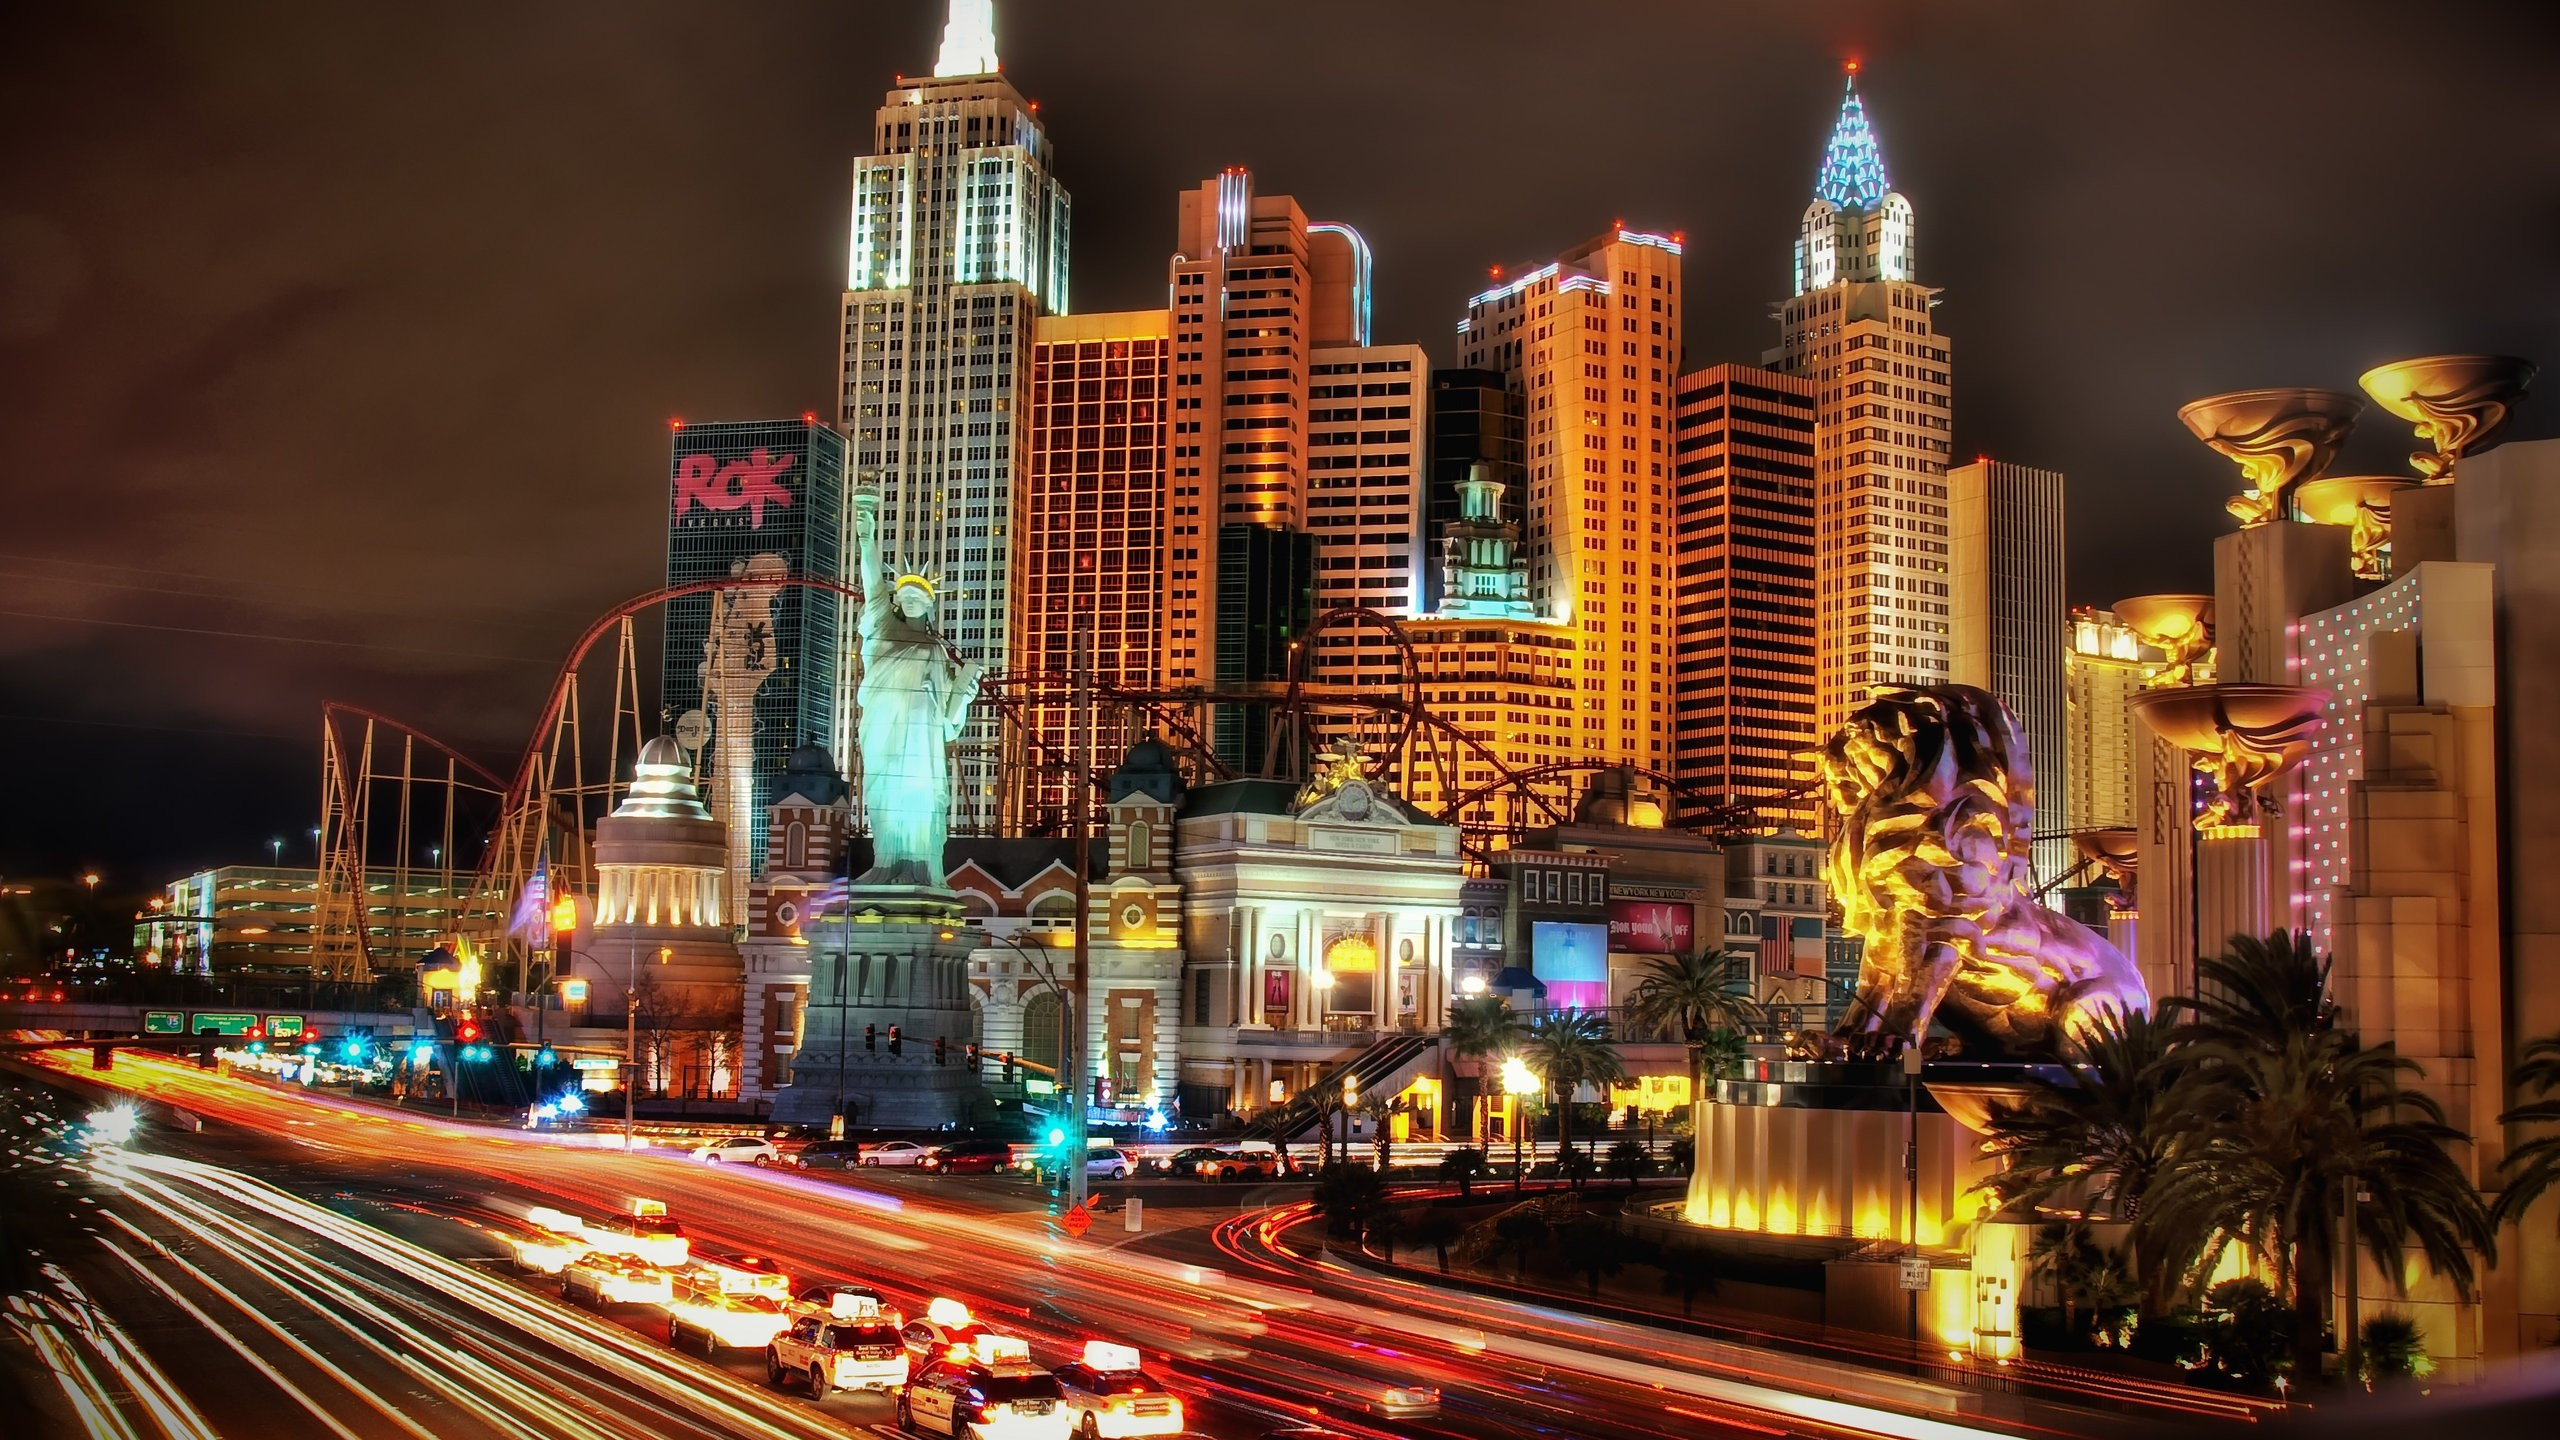 las-vegas-world-hd-wallpaper-2560x1440-3577